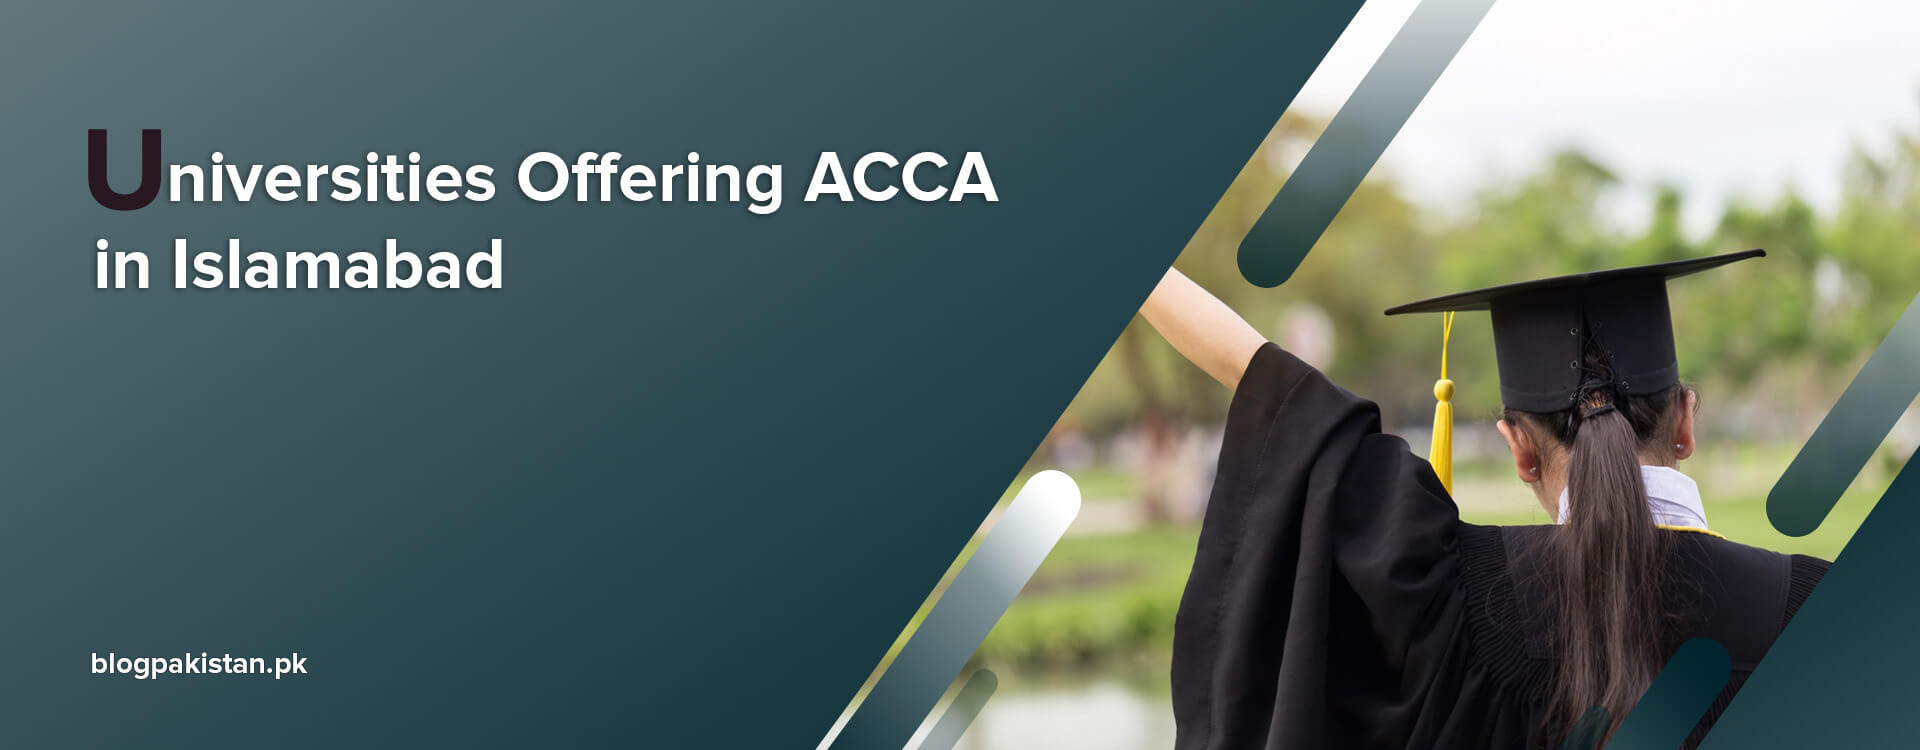 universities-offering-ACCA-in-islamabad